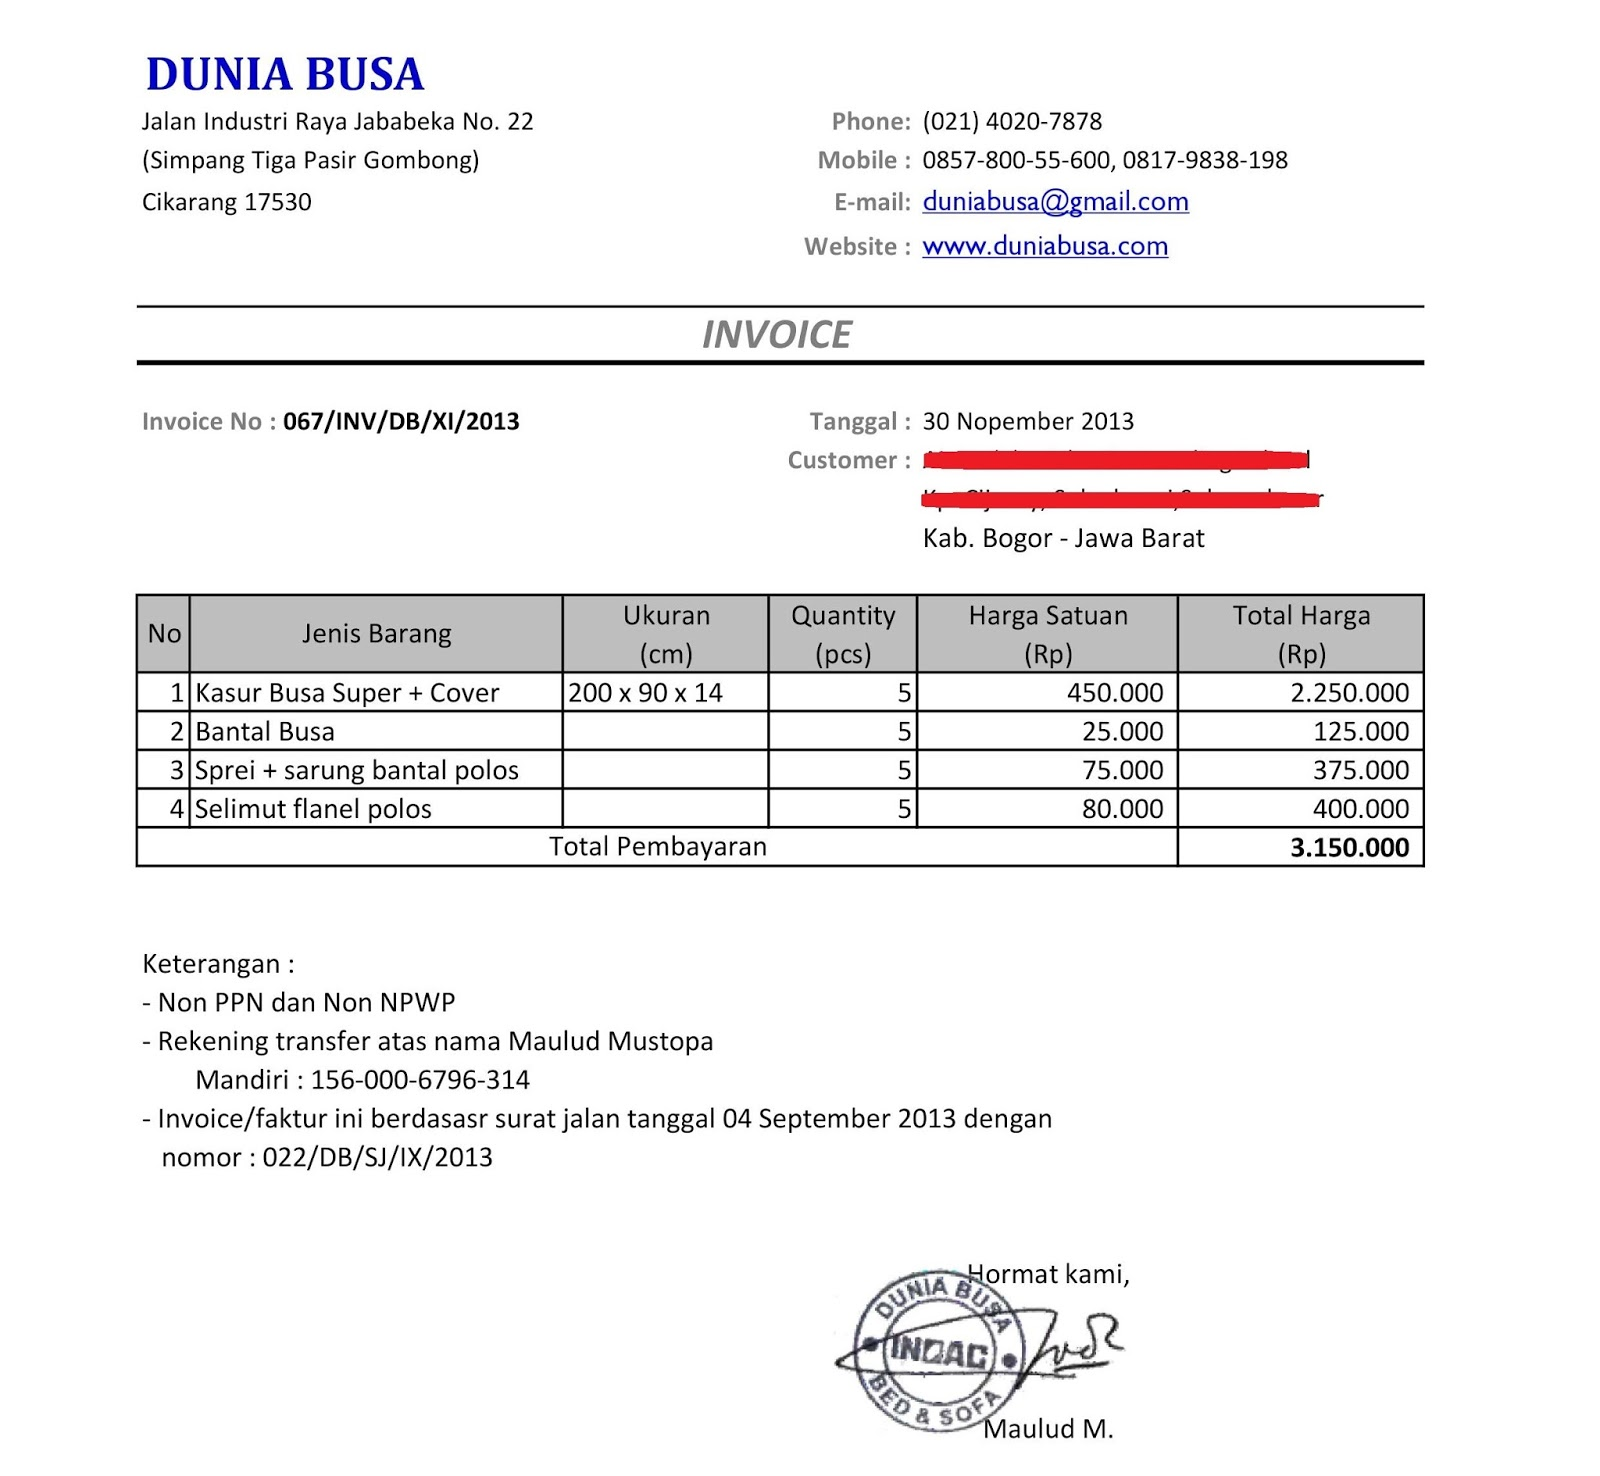 Centralasianshepherdus  Gorgeous Free Invoice Online  Create Invoice Online  Invoice Template  With Outstanding Contoh Format Invoice Atau Surat Tagihan  Brankas Arsip  Free Invoice Online With Archaic Purchase Order Invoice Template Also Free Printable Blank Invoice Form In Addition Excel Invoice Templates Free Download And Printable Invoice Forms For Free As Well As Define Invoice Discounting Additionally International Shipping Invoice From Sklepco With Centralasianshepherdus  Outstanding Free Invoice Online  Create Invoice Online  Invoice Template  With Archaic Contoh Format Invoice Atau Surat Tagihan  Brankas Arsip  Free Invoice Online And Gorgeous Purchase Order Invoice Template Also Free Printable Blank Invoice Form In Addition Excel Invoice Templates Free Download From Sklepco